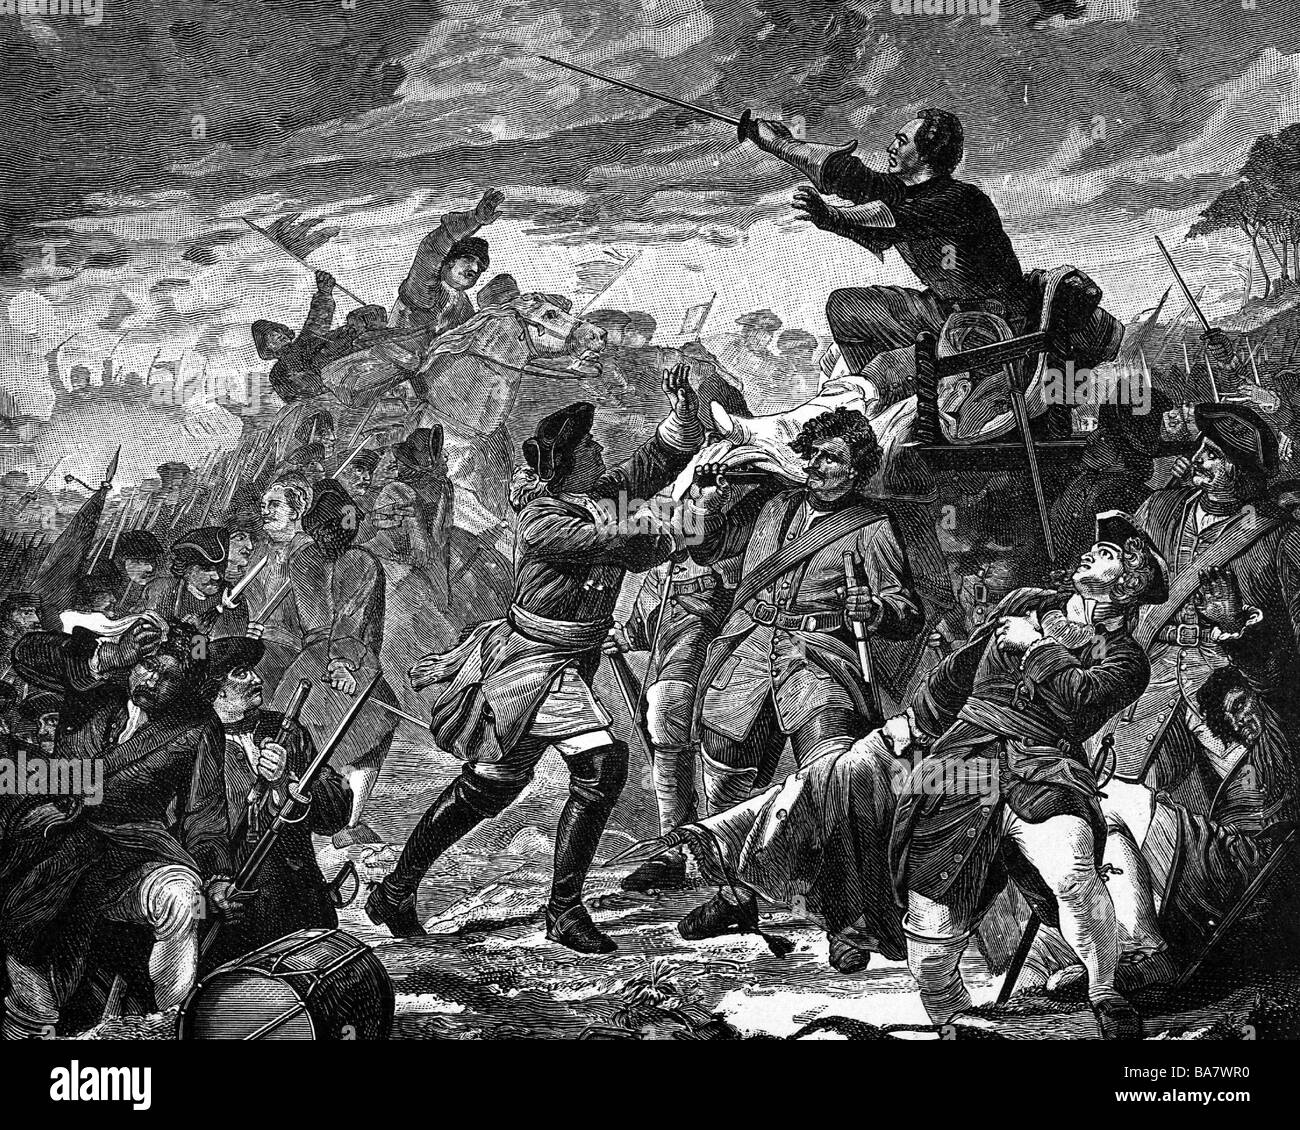 Charles XII, 27.6.1682 - 11.12. 1718, King of Sweden 15.4.1697 - 11.12.1718, at the Battle of Poltava, wood engraving, - Stock Image